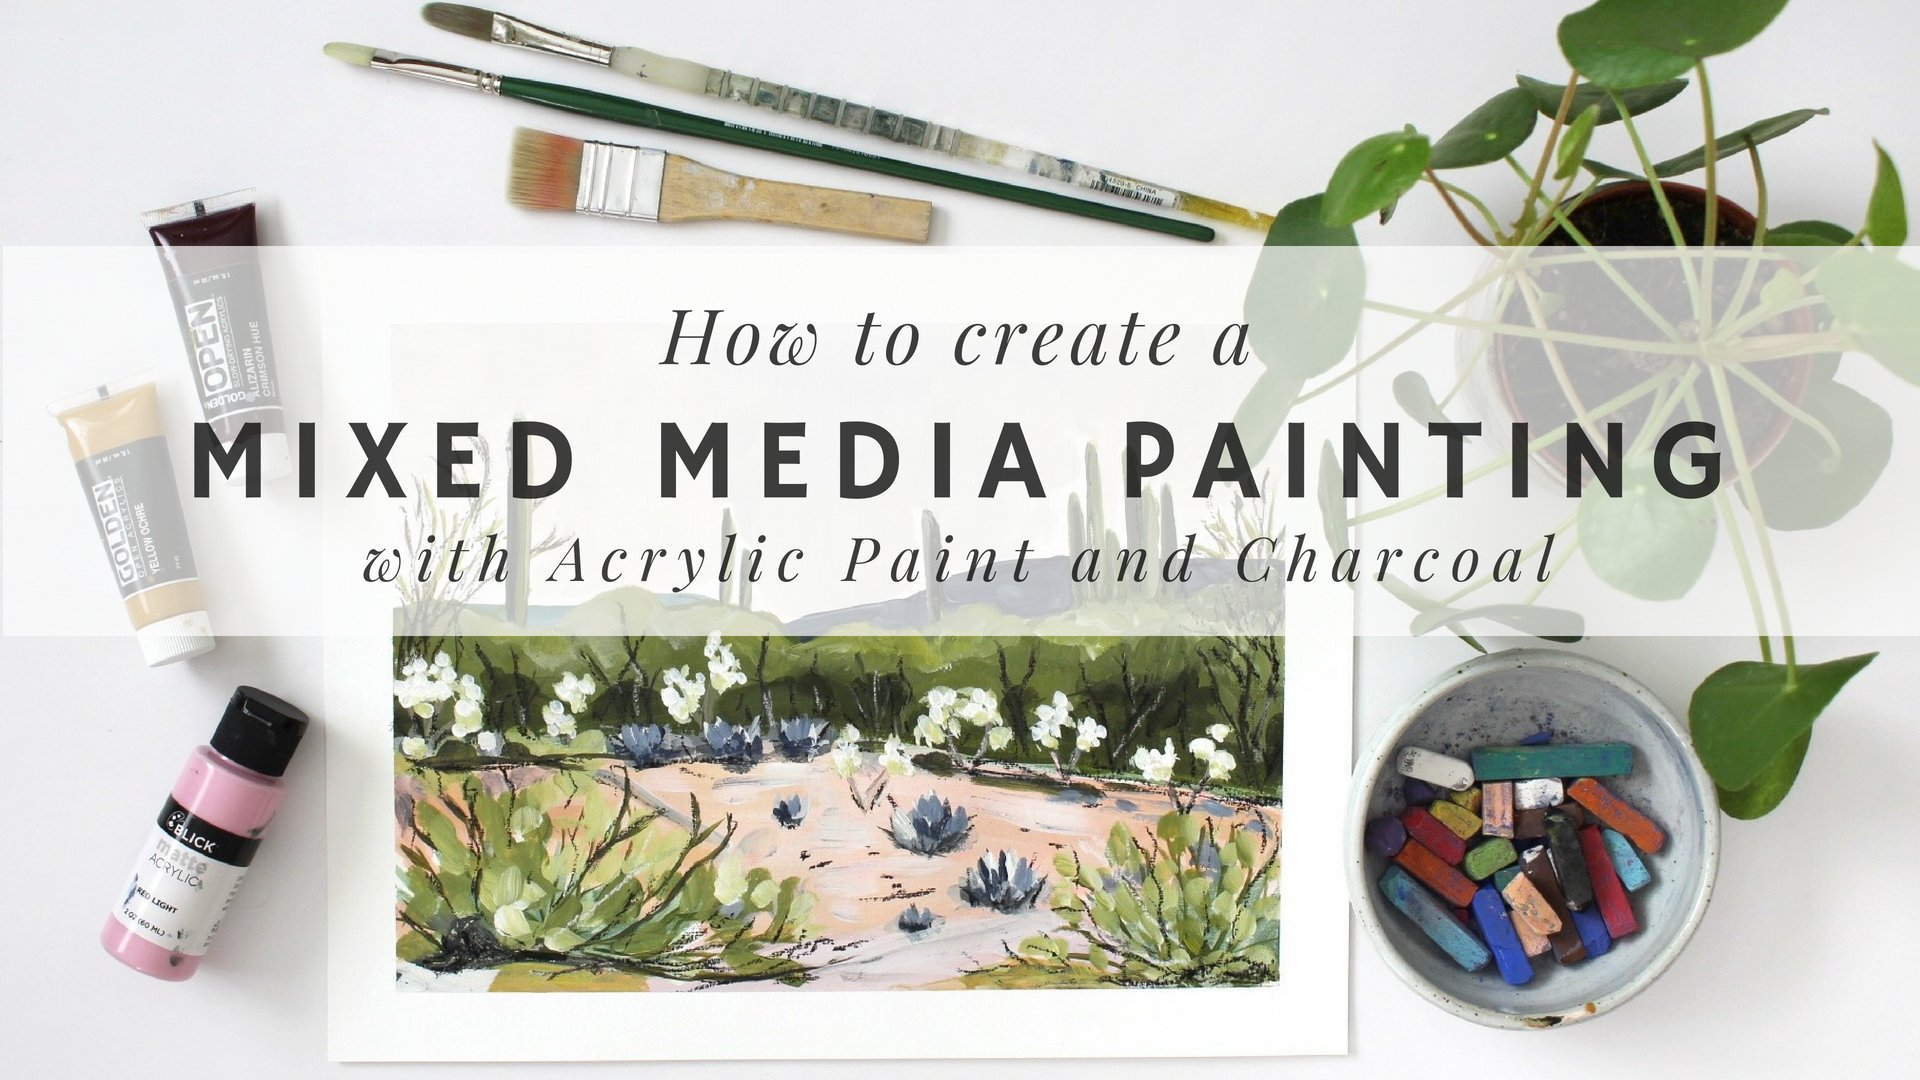 Acrylic Painting: How To Create A Mixed Media Painting